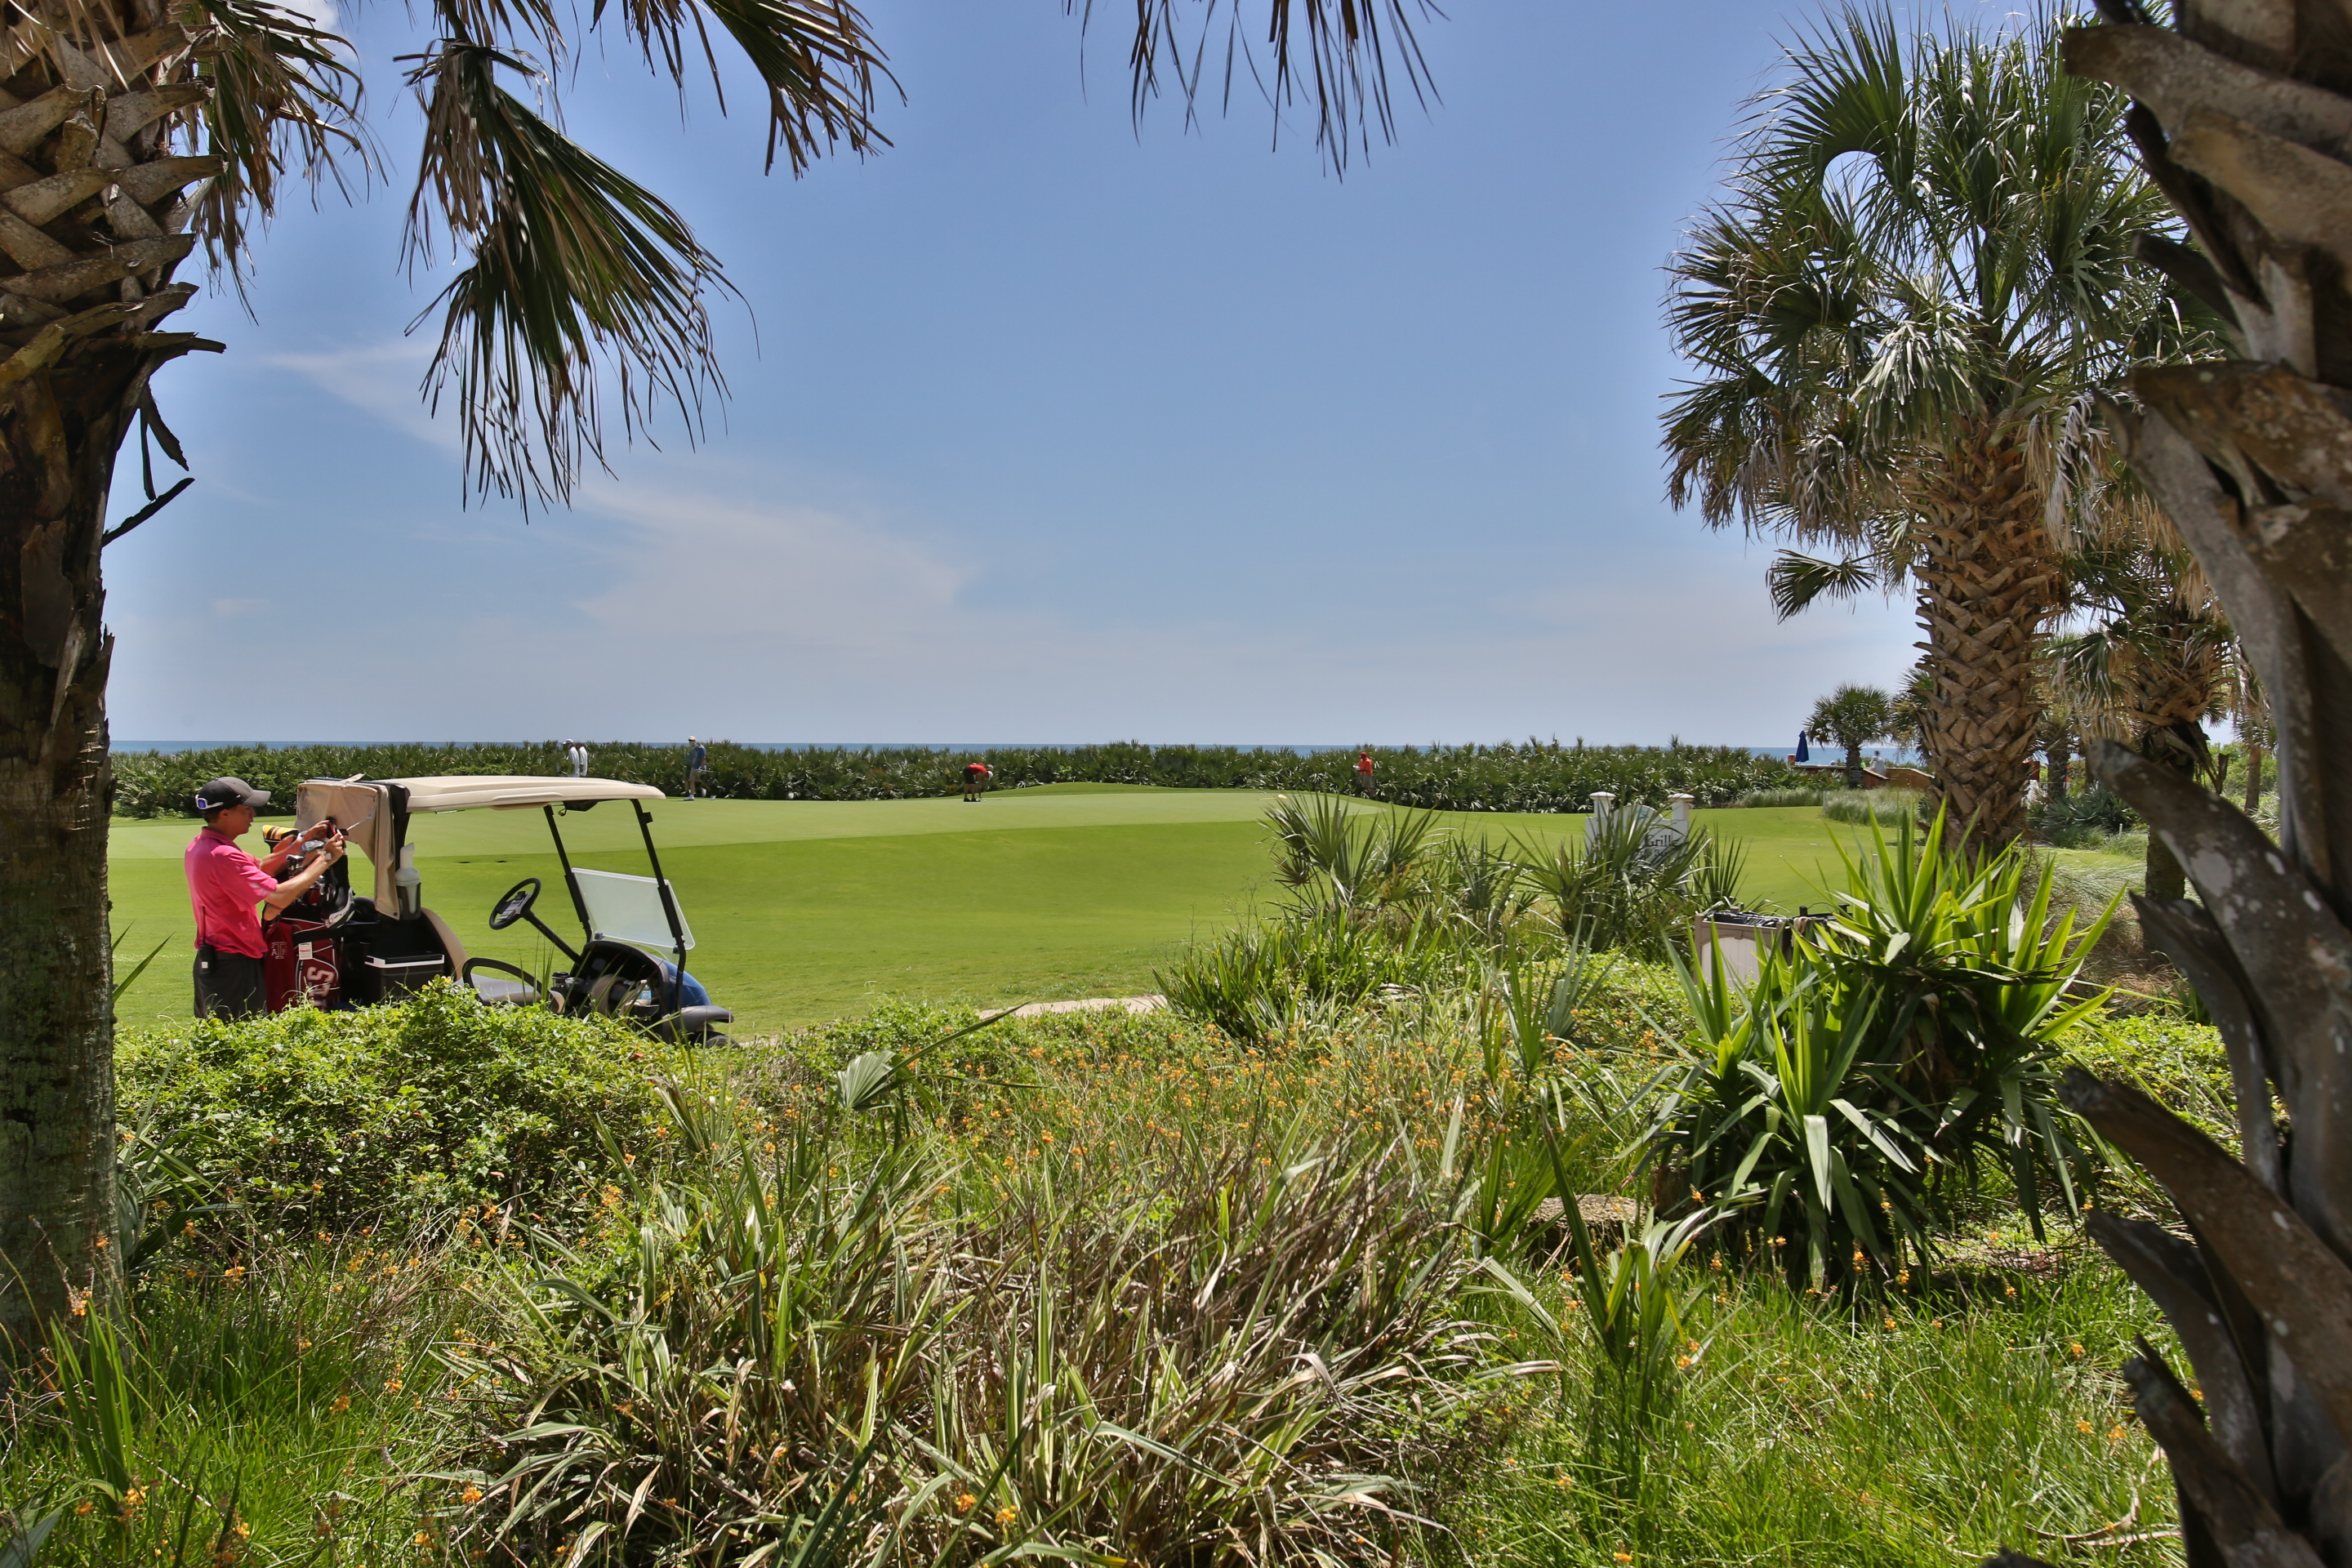 hammock beach golfer cart 18th green new 3